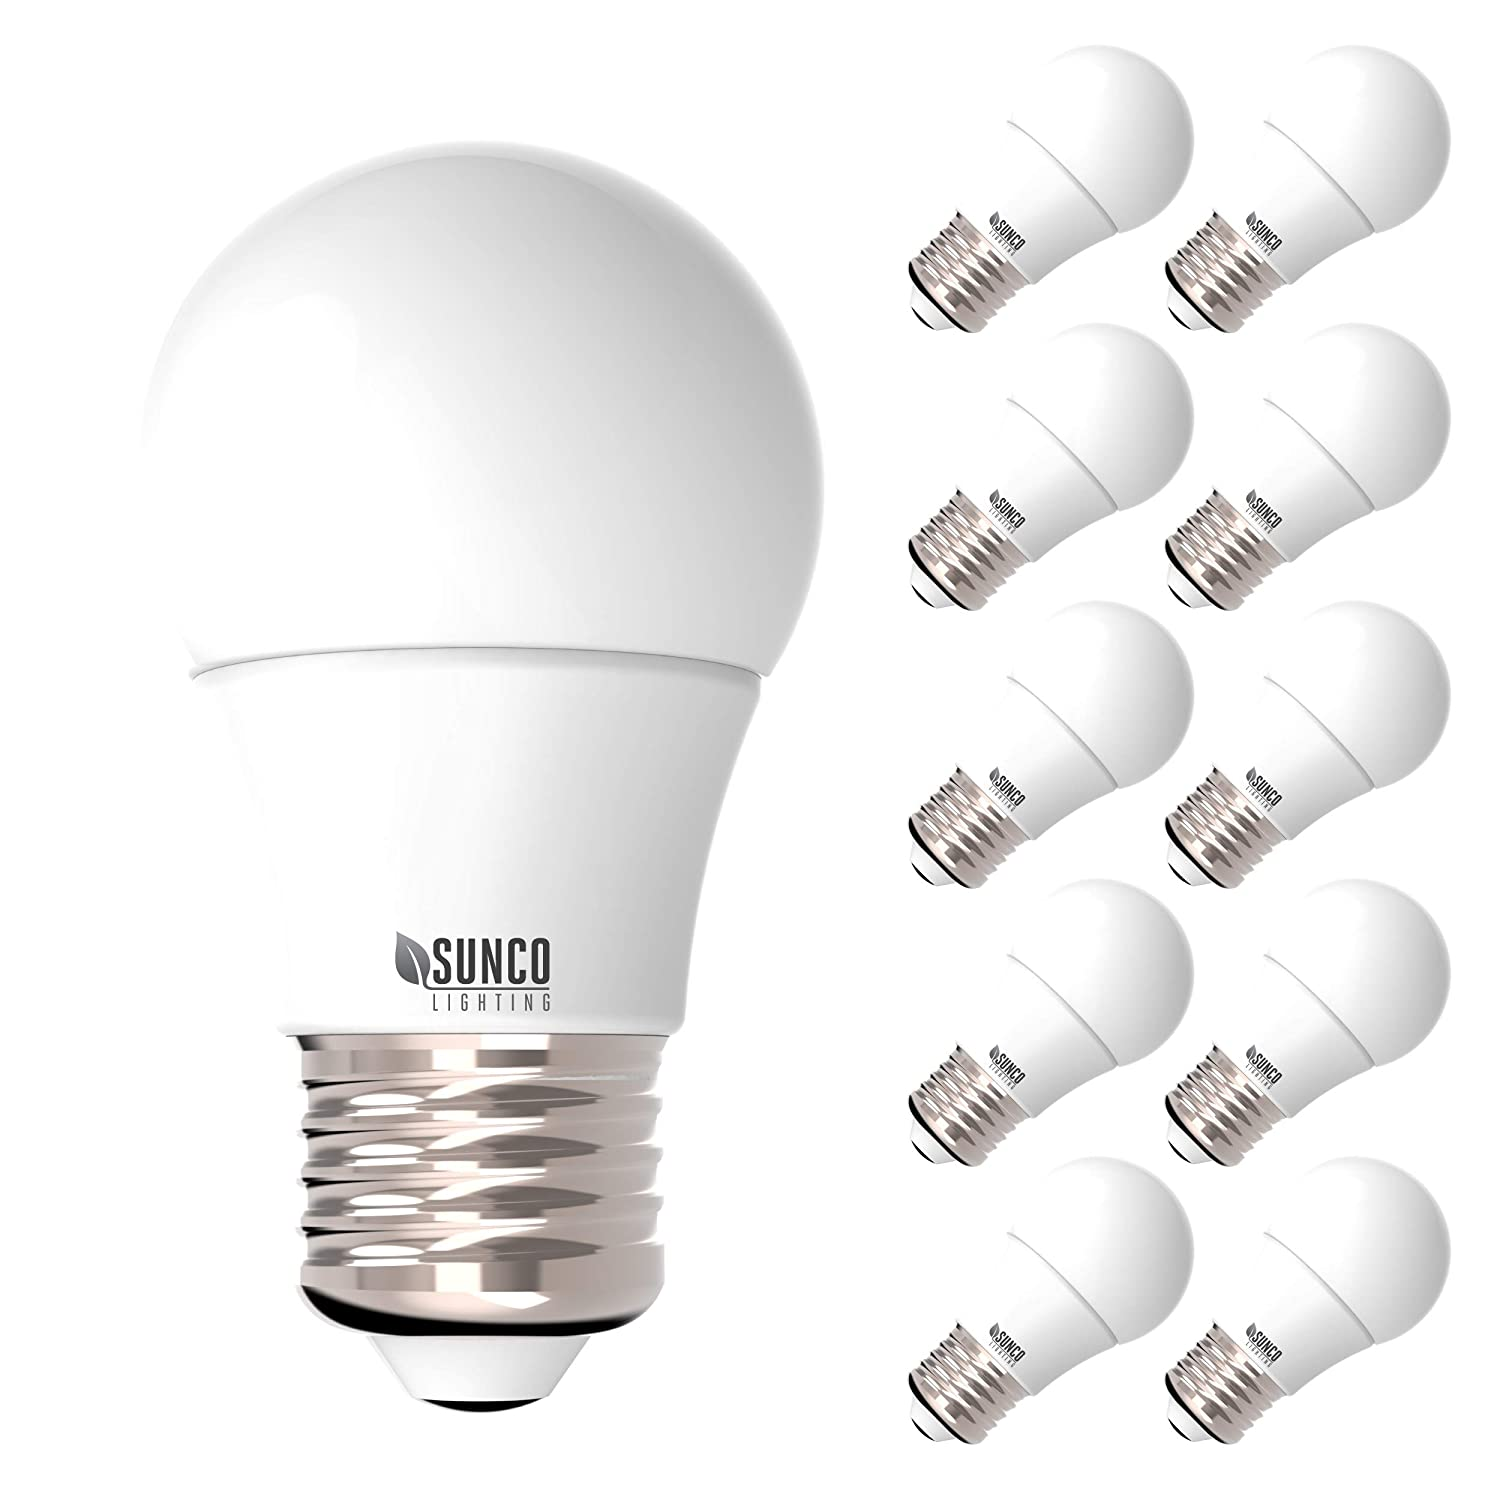 Sunco Lighting 10 Pack A15 LED Bulb, 8W=60W, 3000K Warm White, Dimmable, 800 LM, E26 Base, Indoor/Outdoor Light - UL, Energy Star